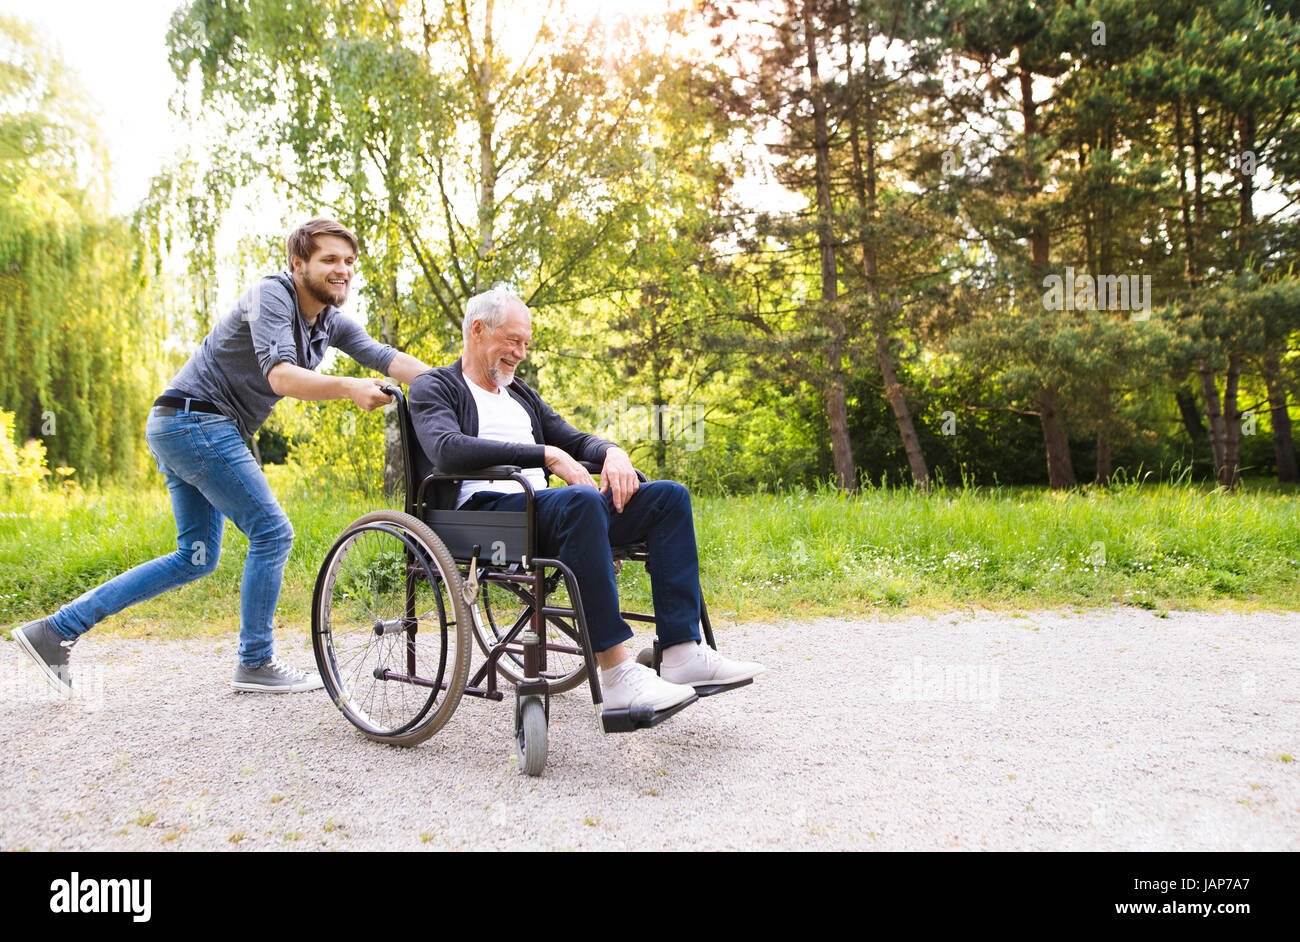 Hipster son running with disabled father in wheelchair at park. - Stock Image